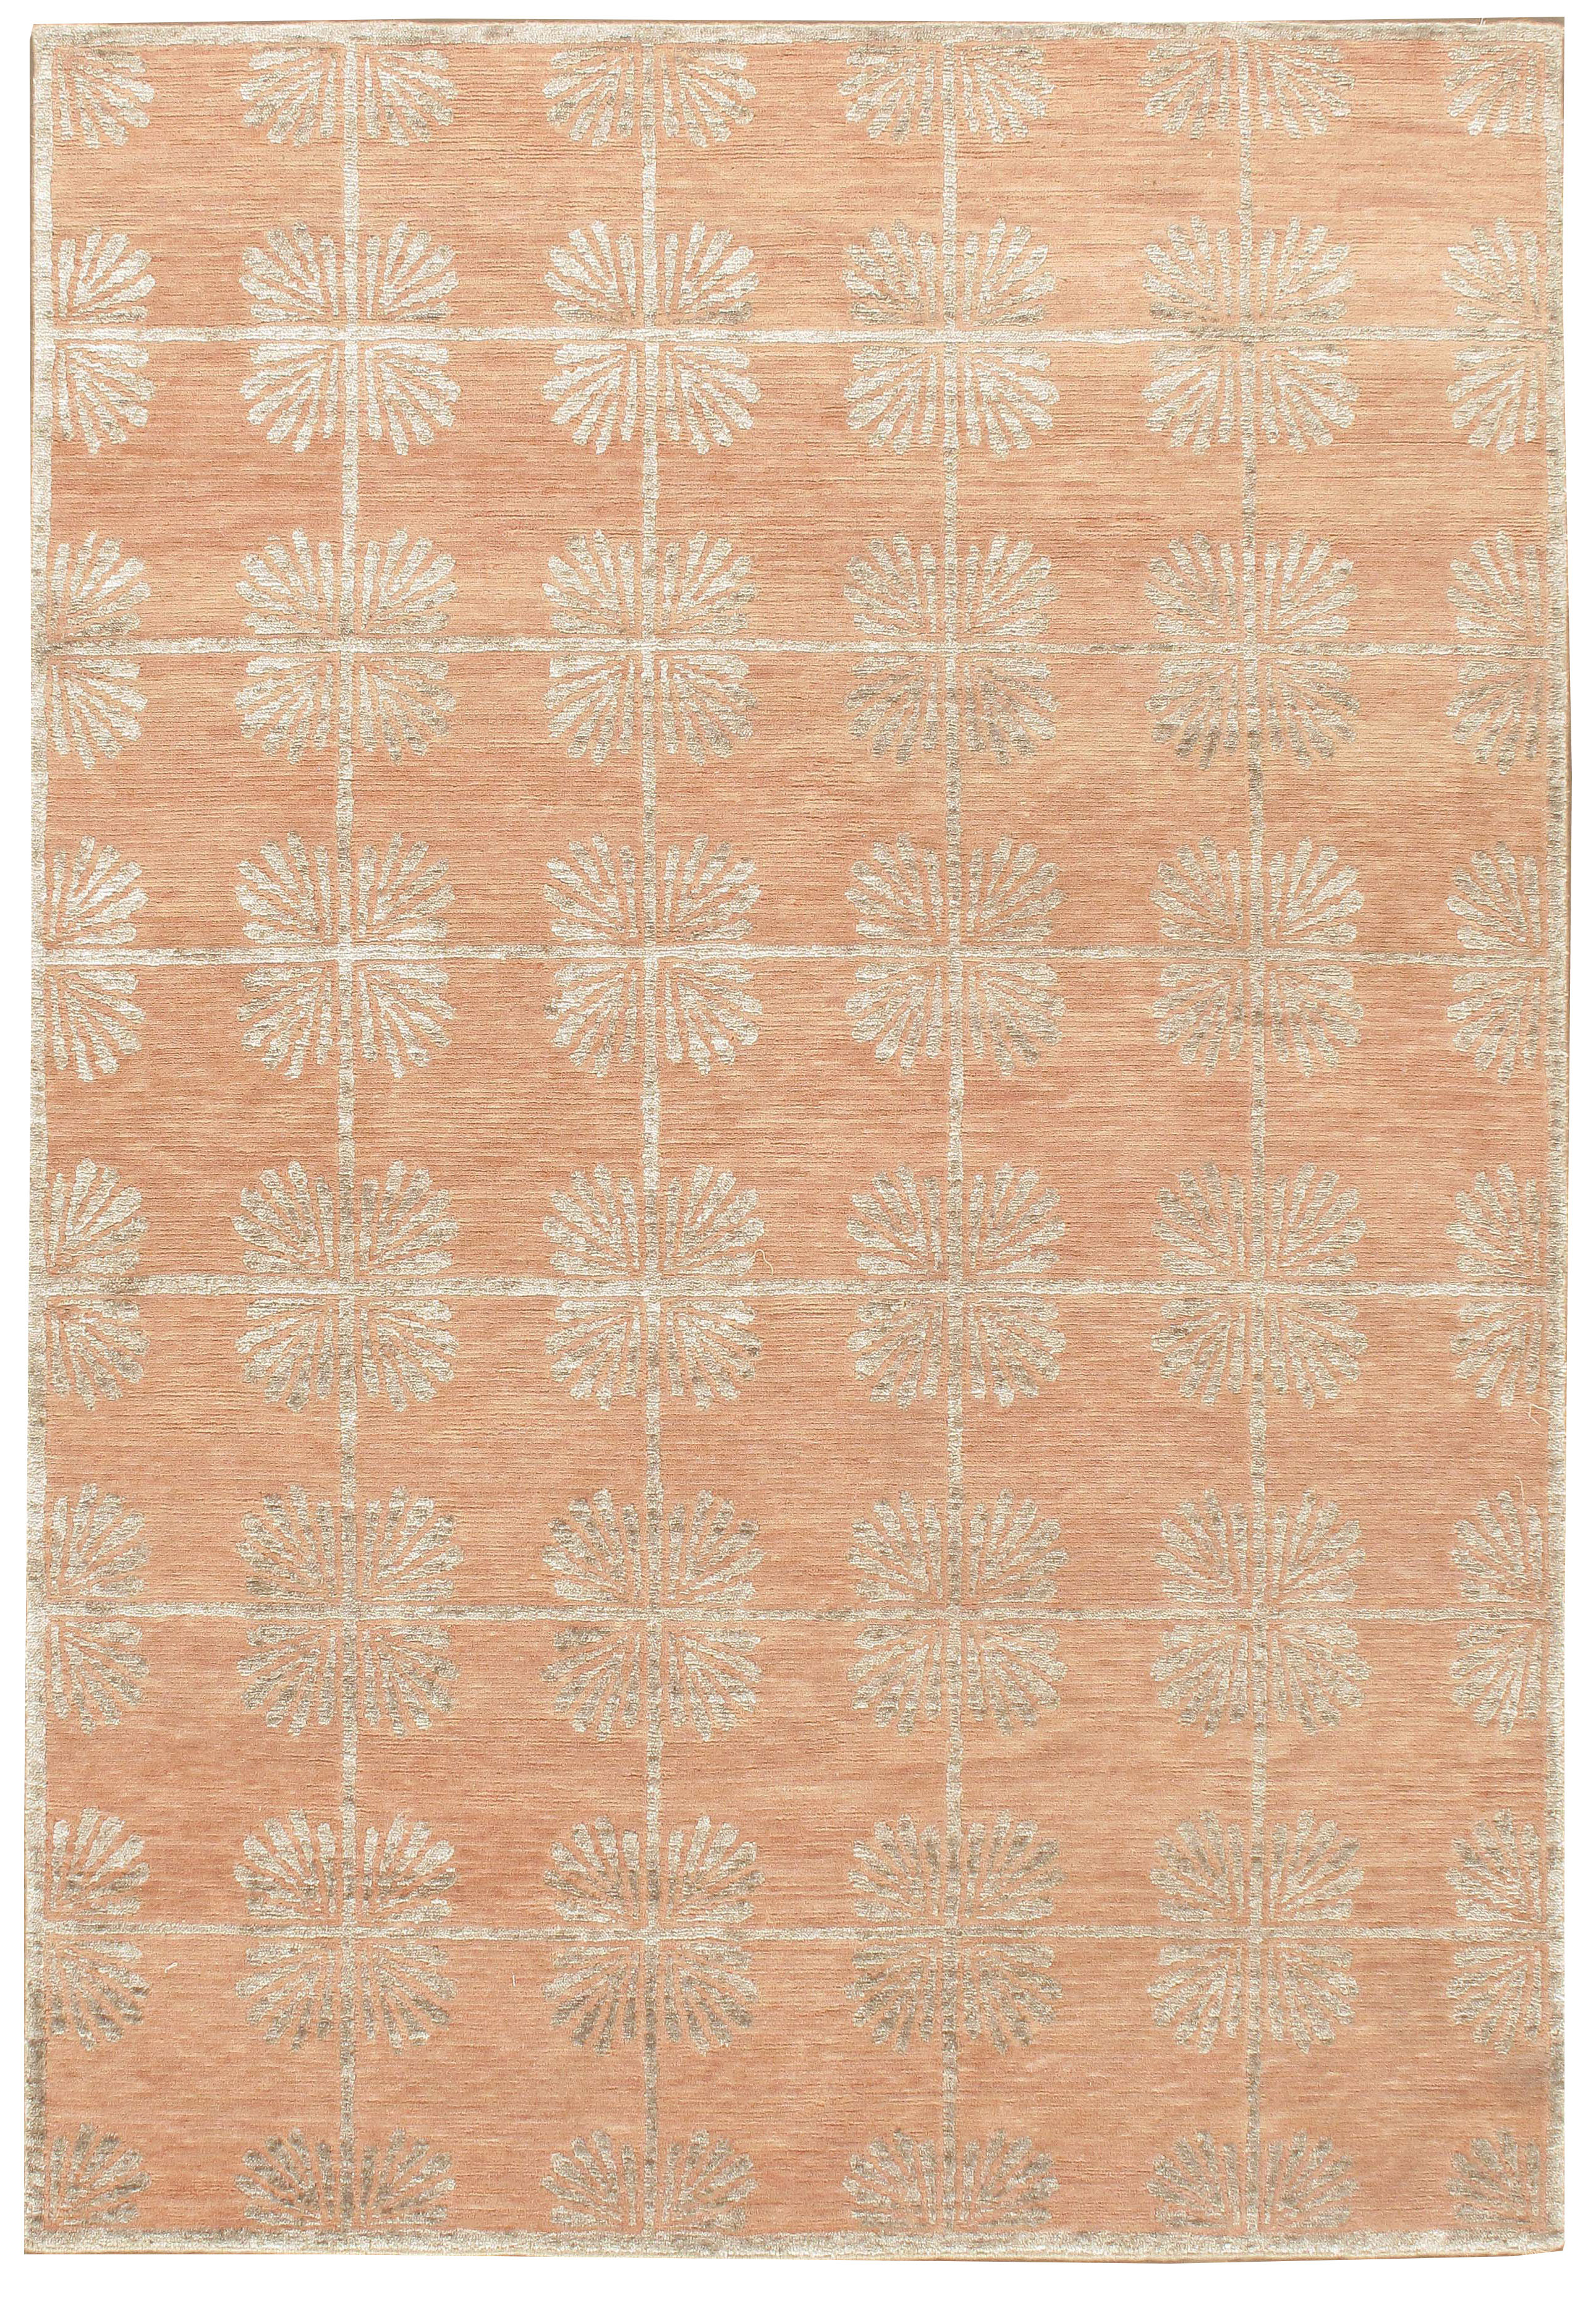 Coral Lace Contemporary Rug